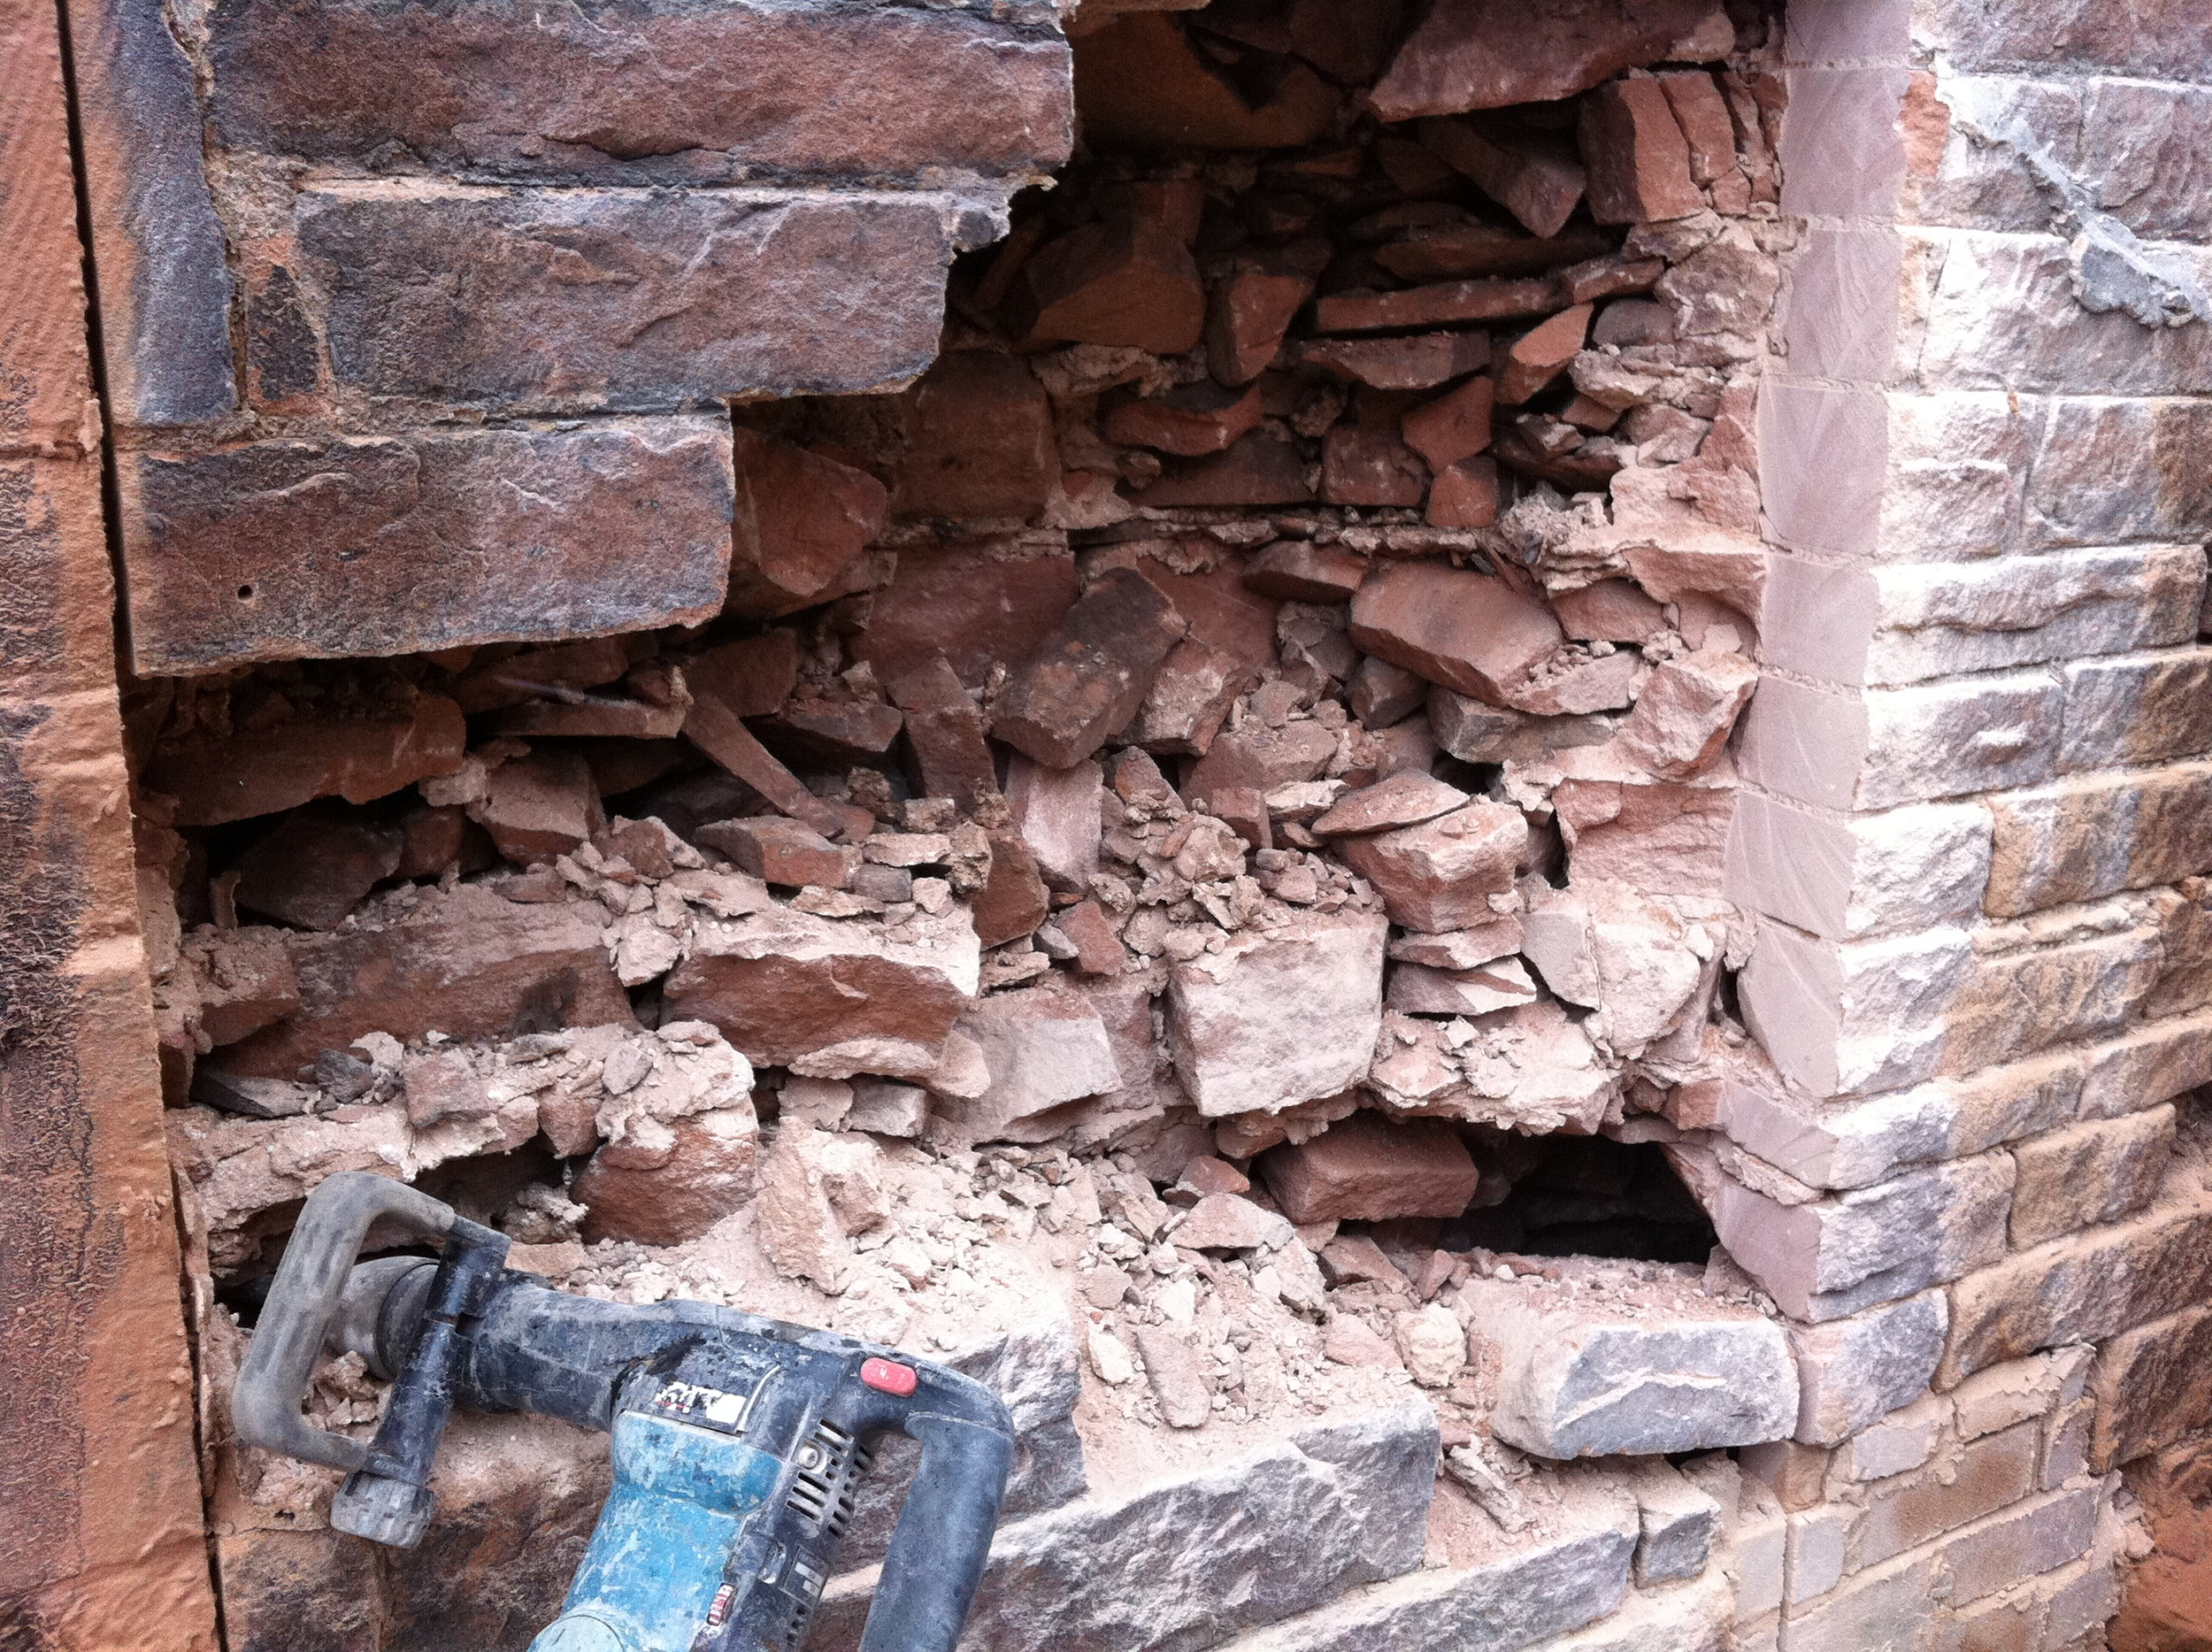 Showing how thick the rectory walls are!